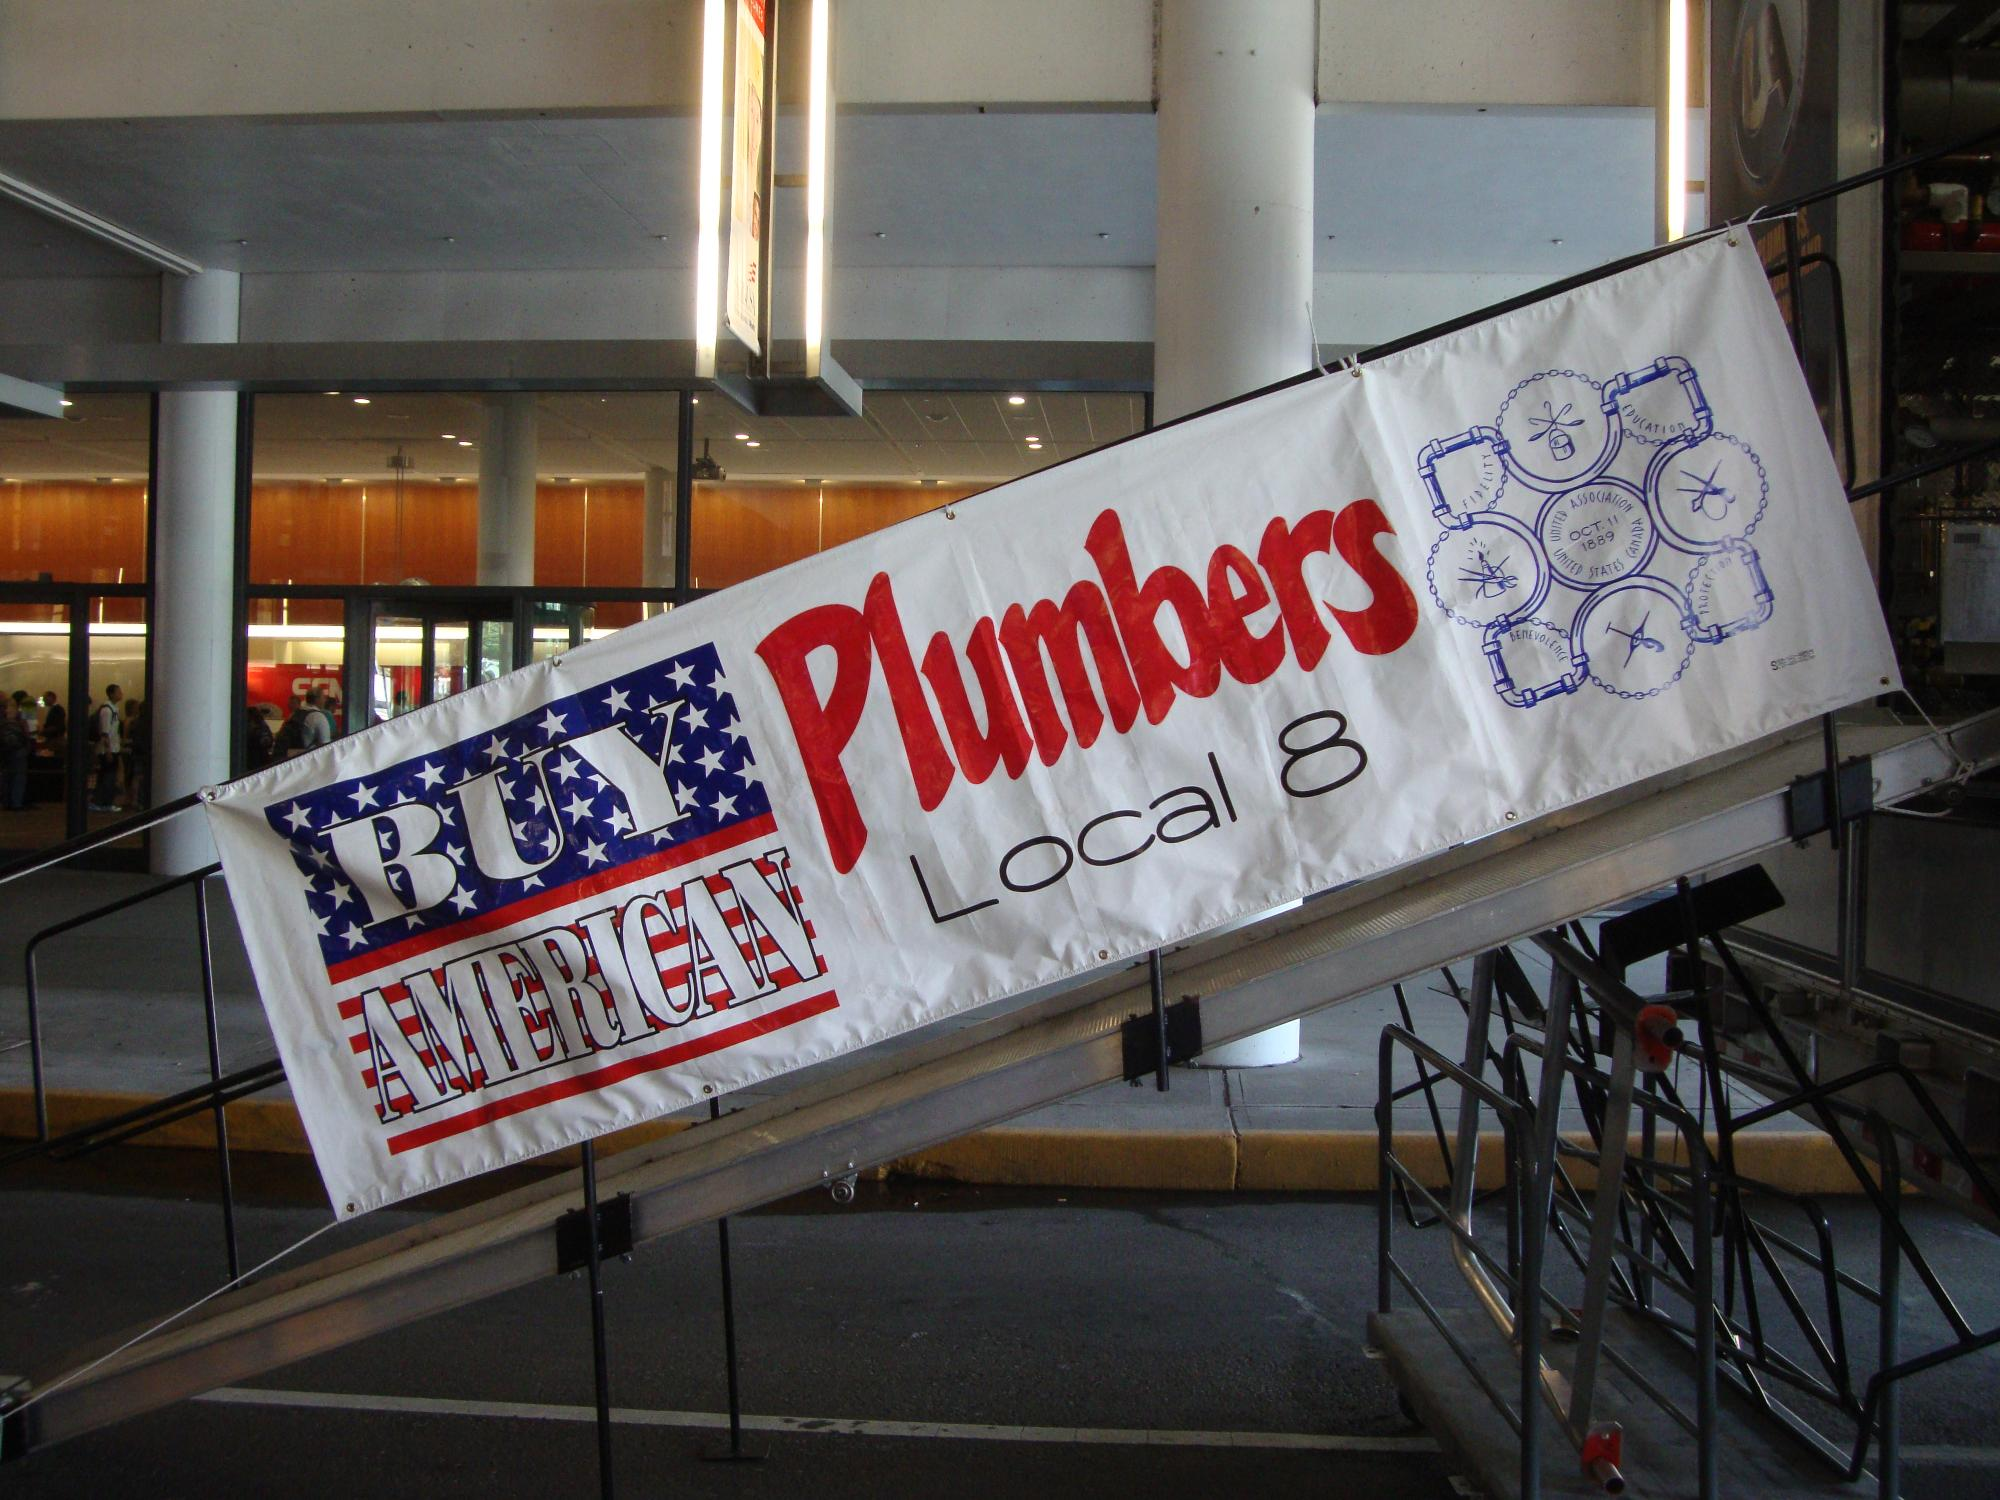 Local 8 Banner at Skills USA 2011